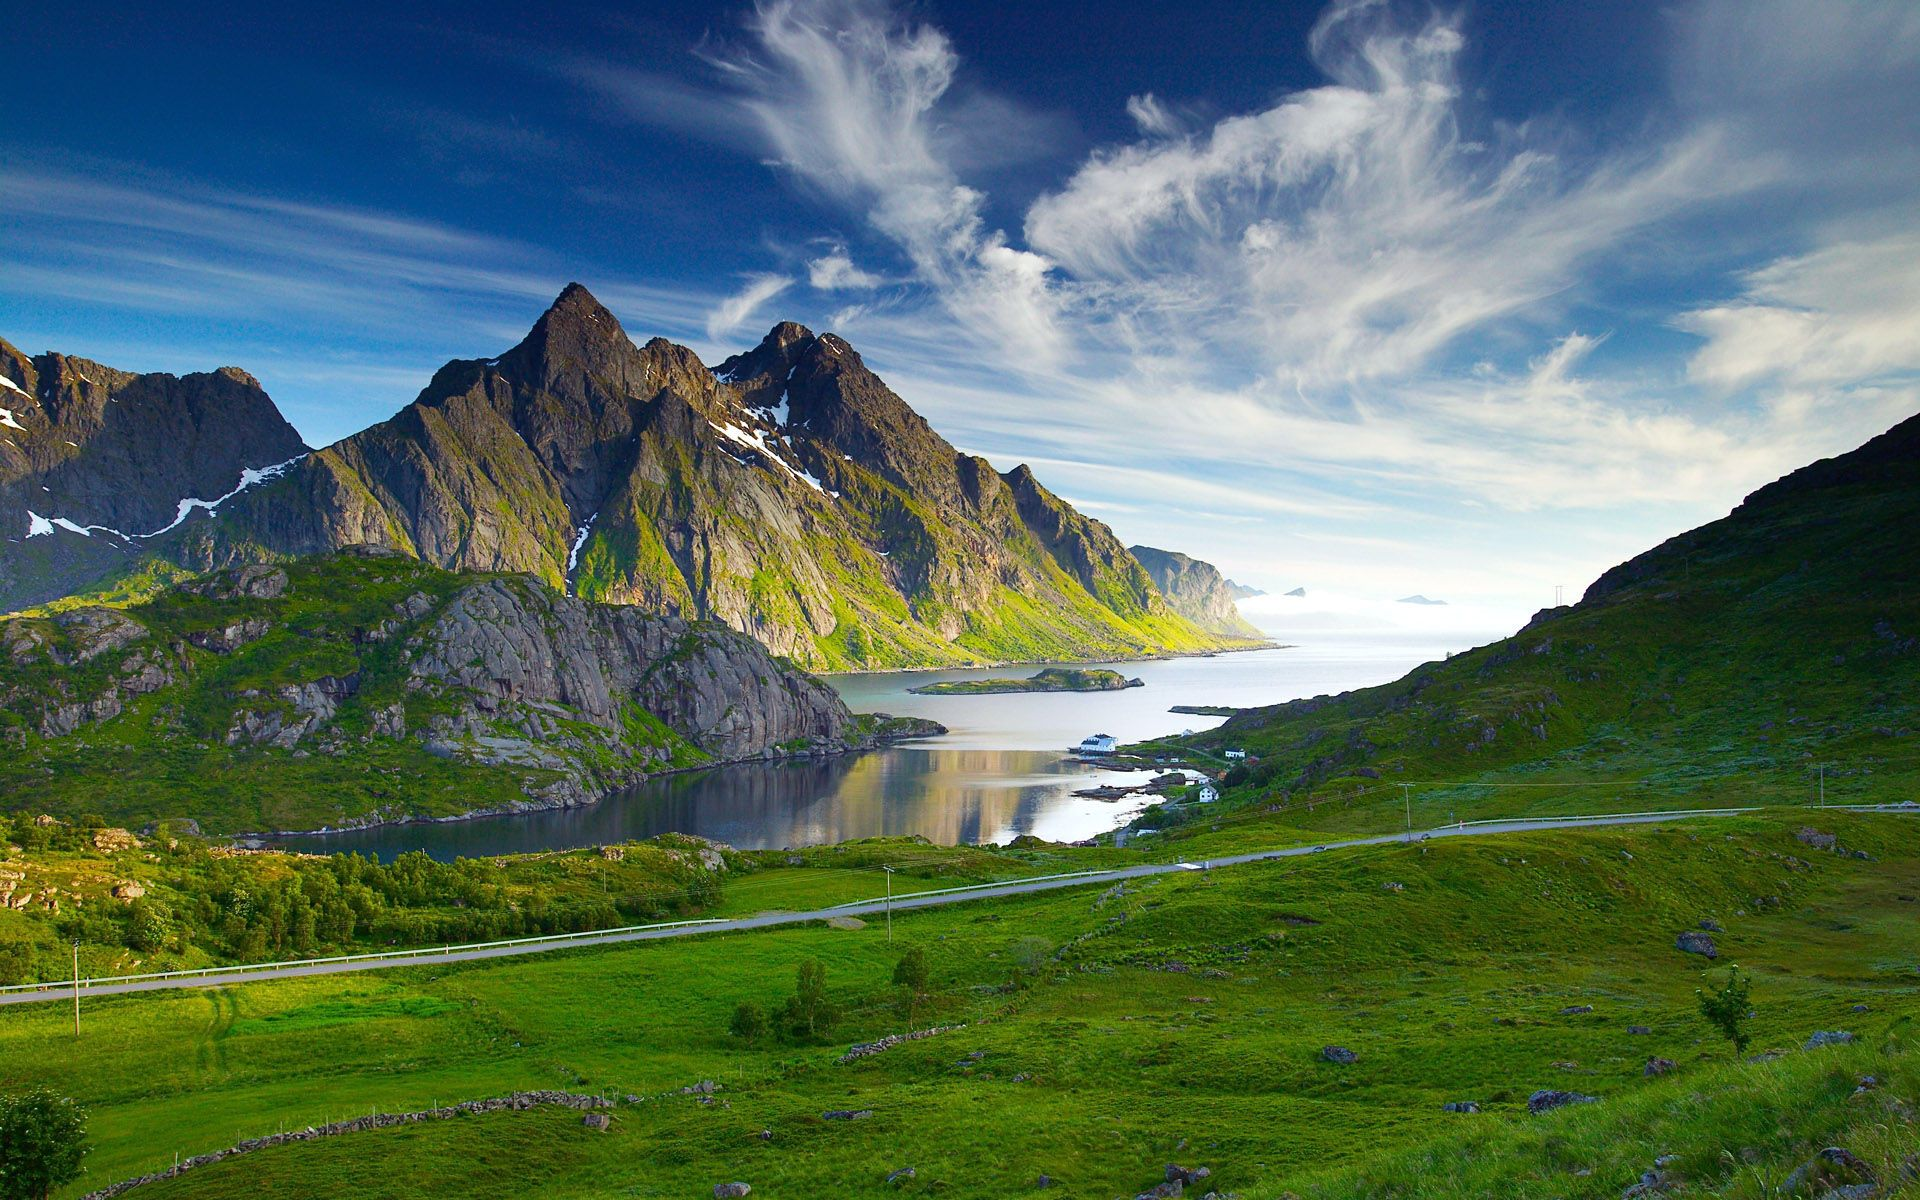 Himmeltindan Vestvagoy Norway Hd Landscape Hd Nature Wallpapers Landscape Wallpaper